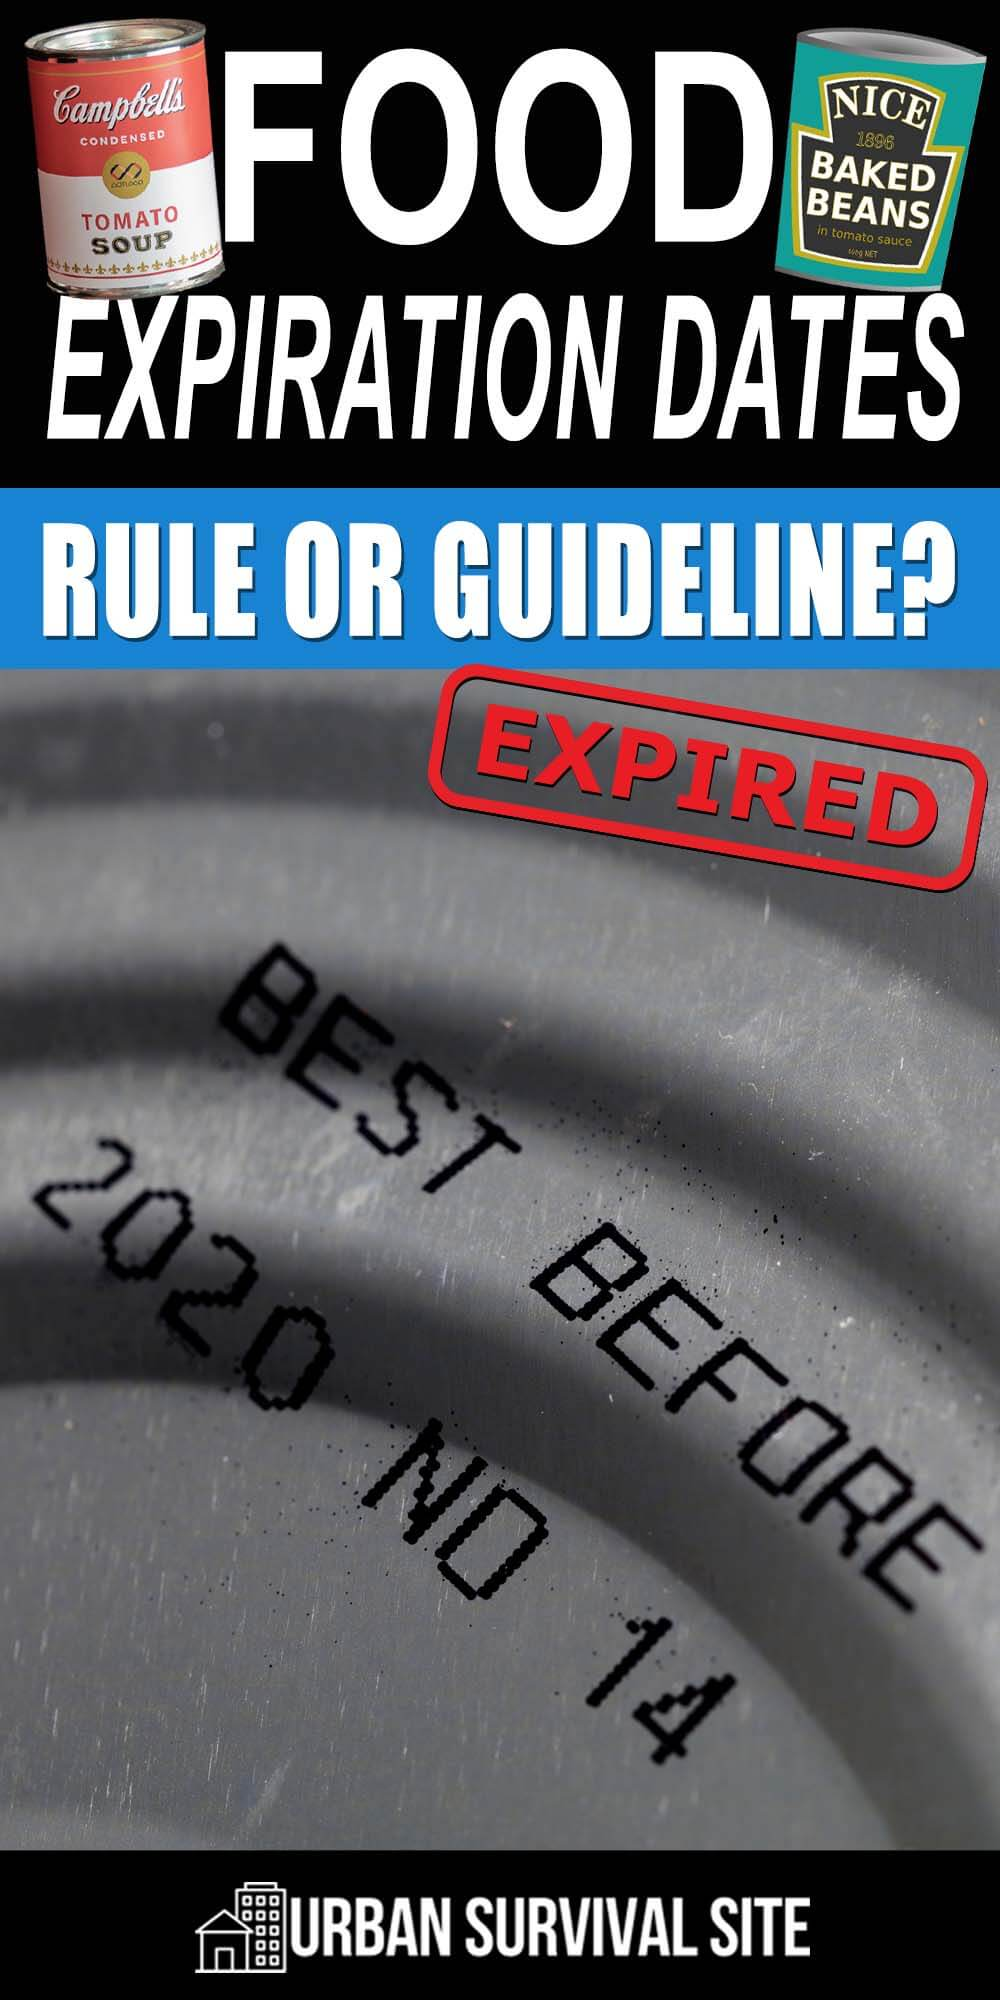 Food Expiration Dates - Rule Or Guideline?